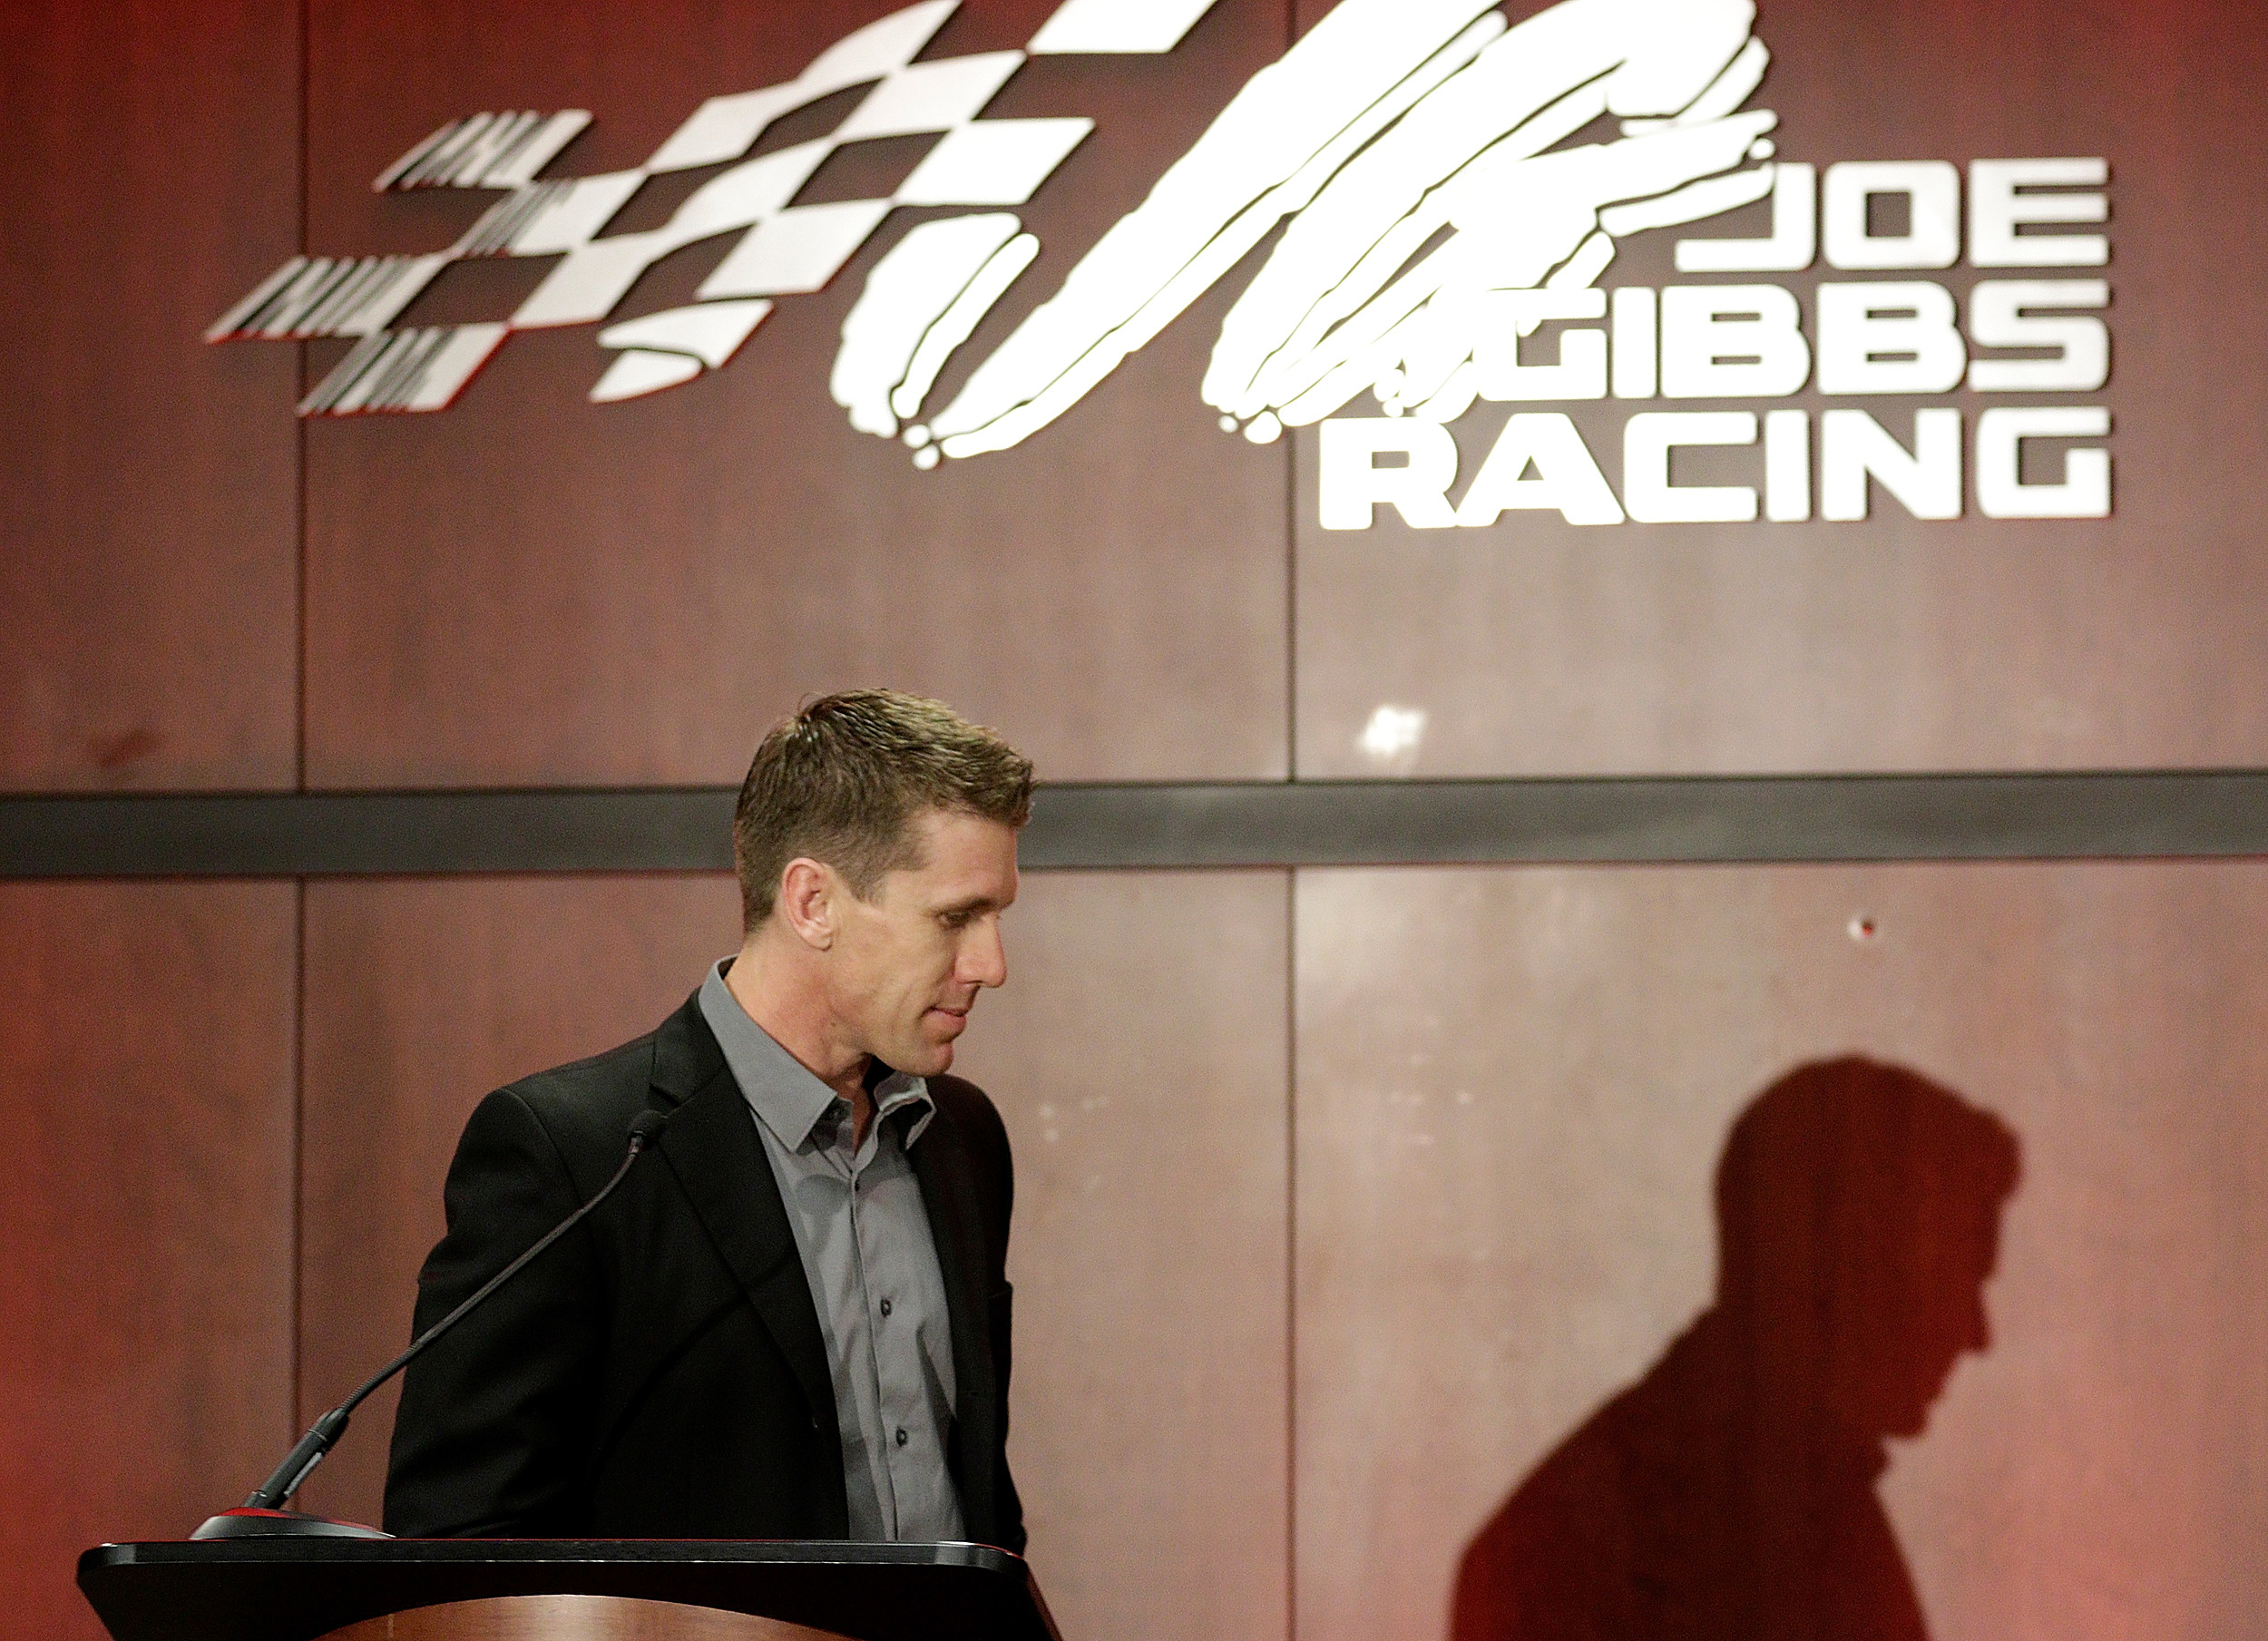 Carl Edwards announces he's 'stepping away' from NASCAR Wednesday